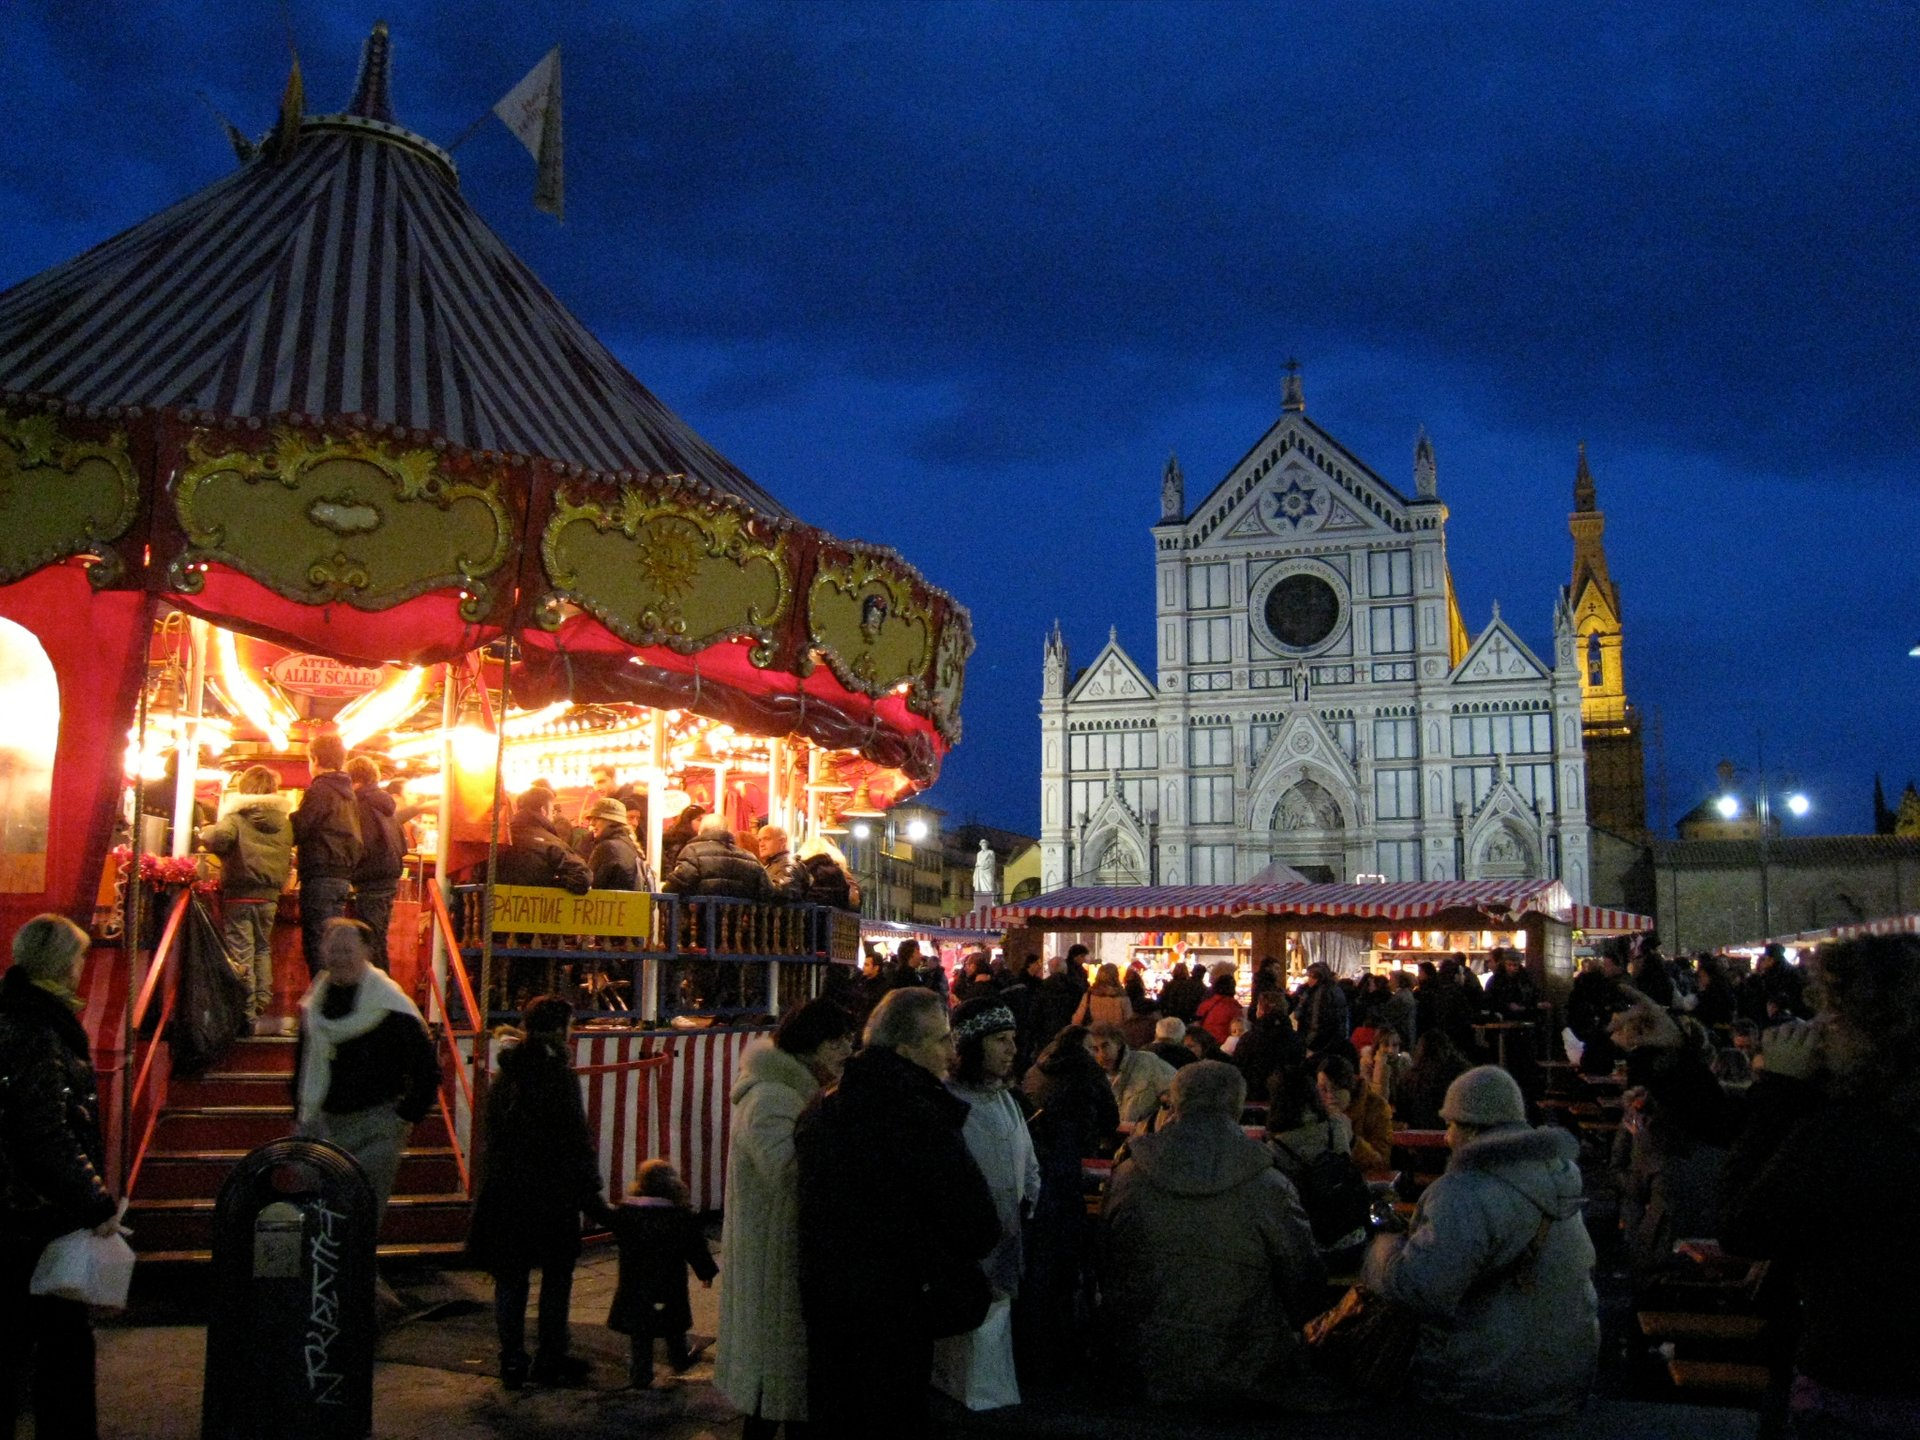 German Christmas Market on Piazza Santa Croce 2020